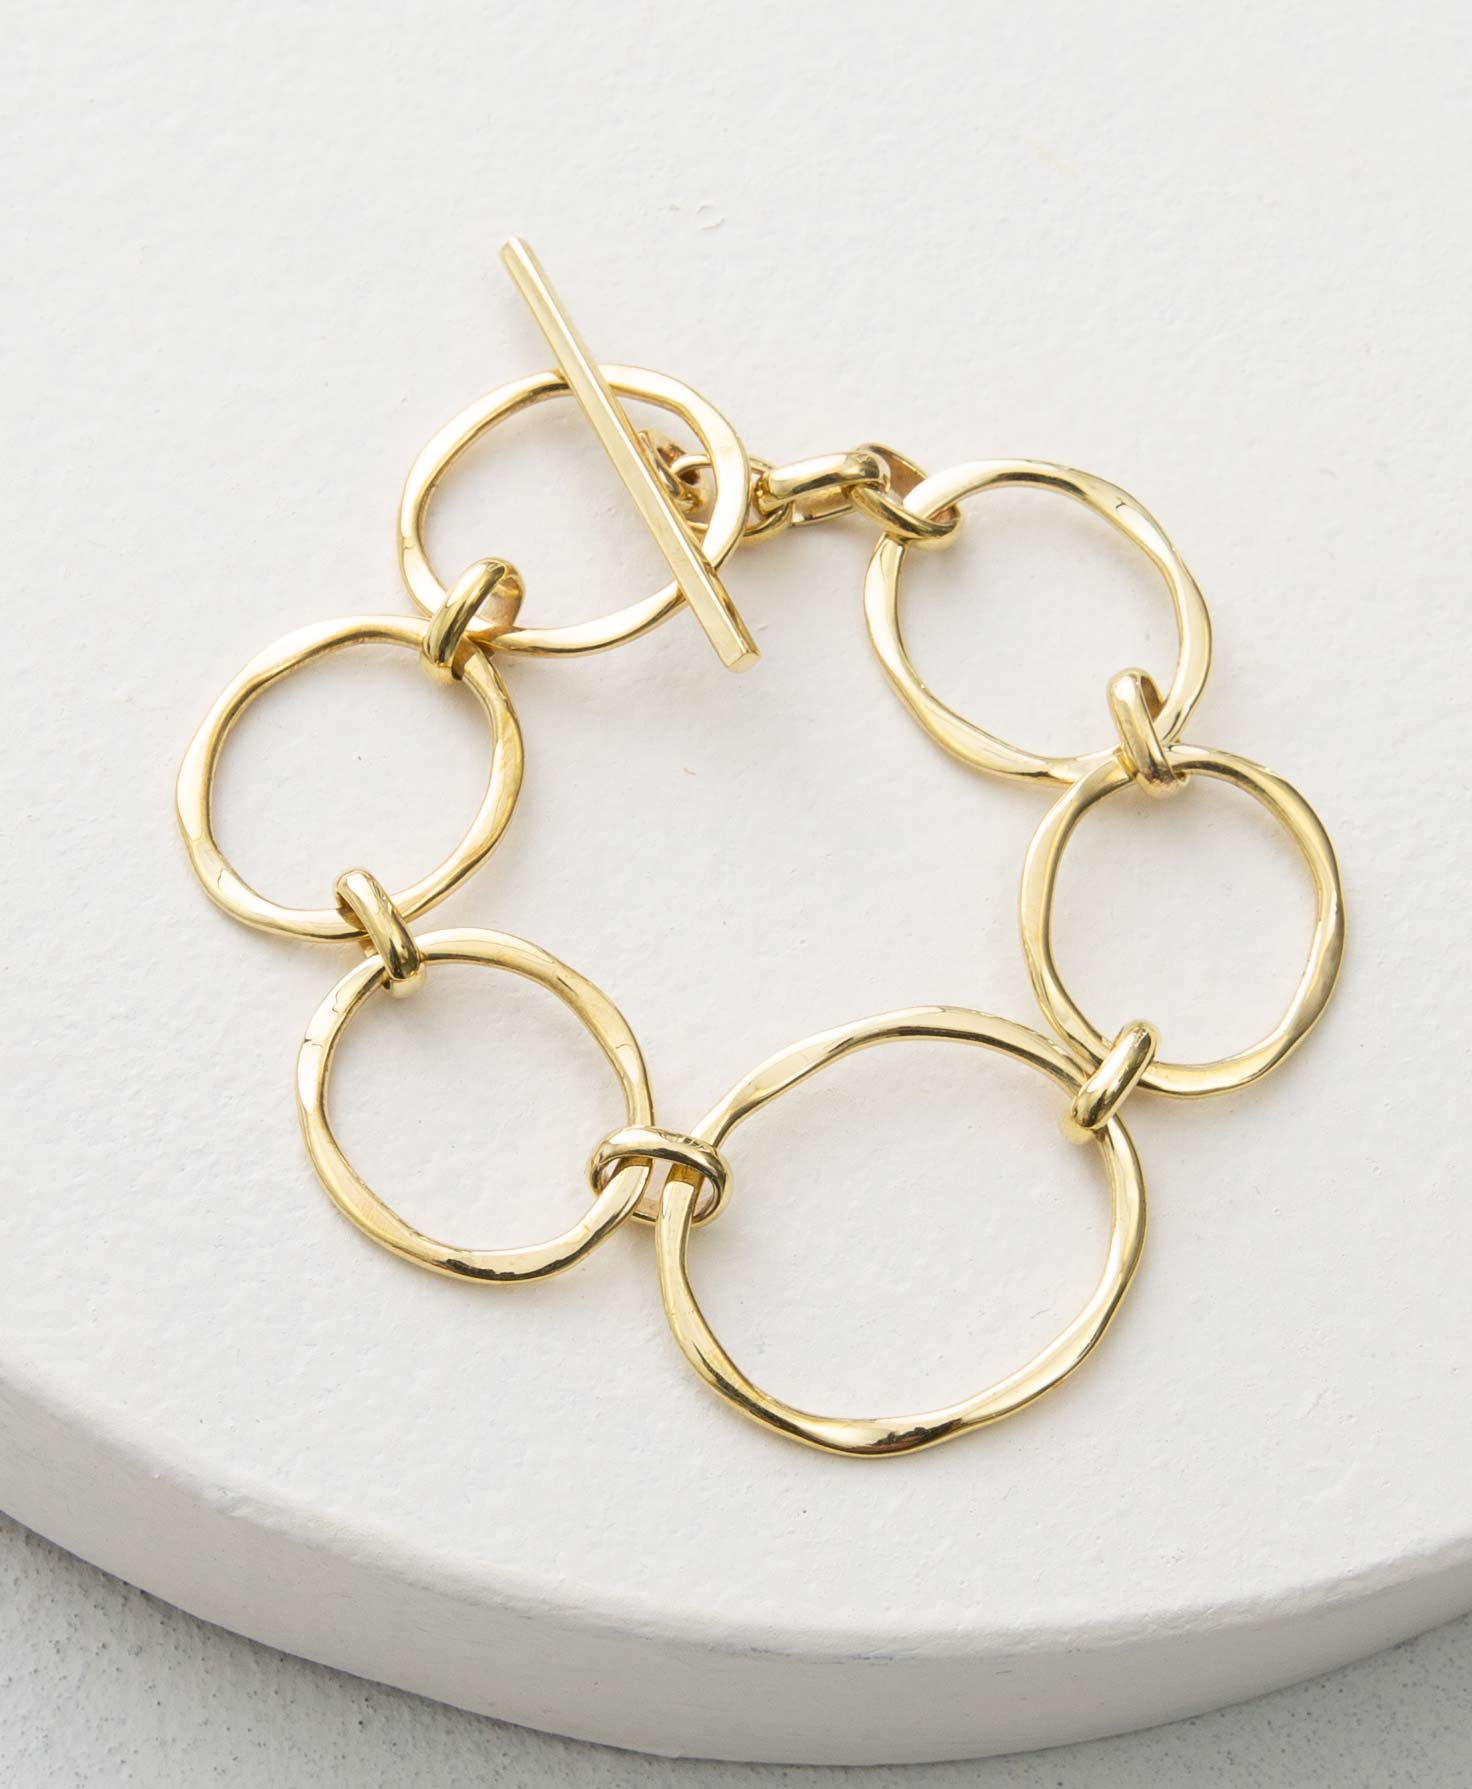 The Pathway Bracelet rests on a white platform. It is composed of six shiny brass hoops connected via small brass links. The hoops vary in size and have a hammered, organic look. At one end of the bracelet is a brass rod that goes through one of the hoops to secure the bracelet.